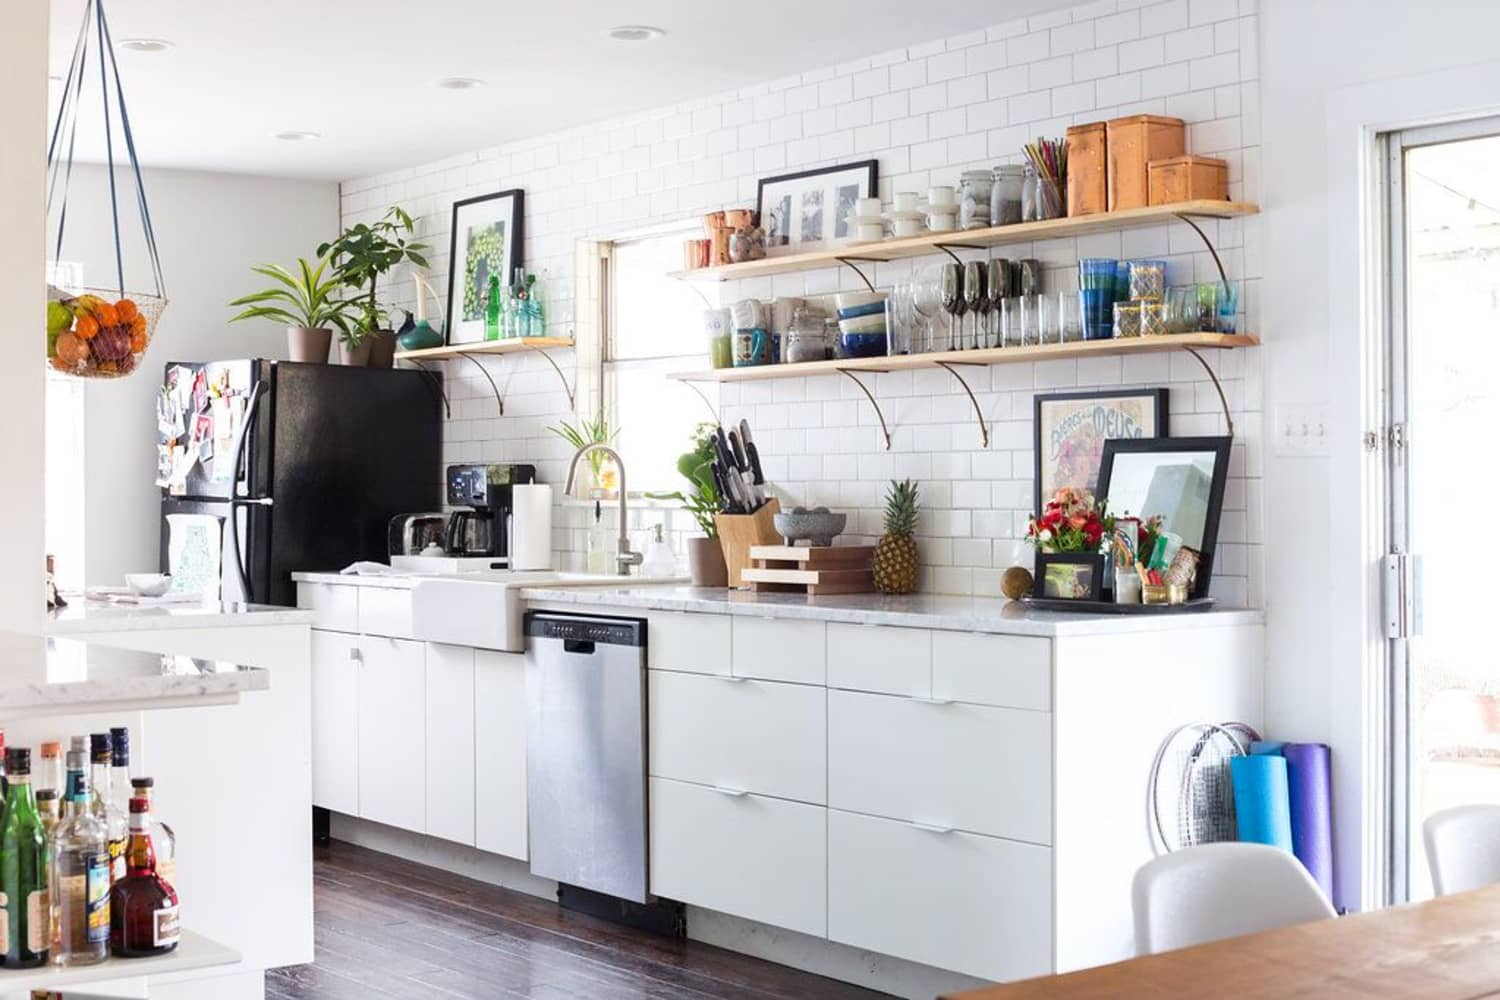 These Bed Bath & Beyond Kitchen Finds Are Up to 75 Percent Off — And They're Selling Out Fast